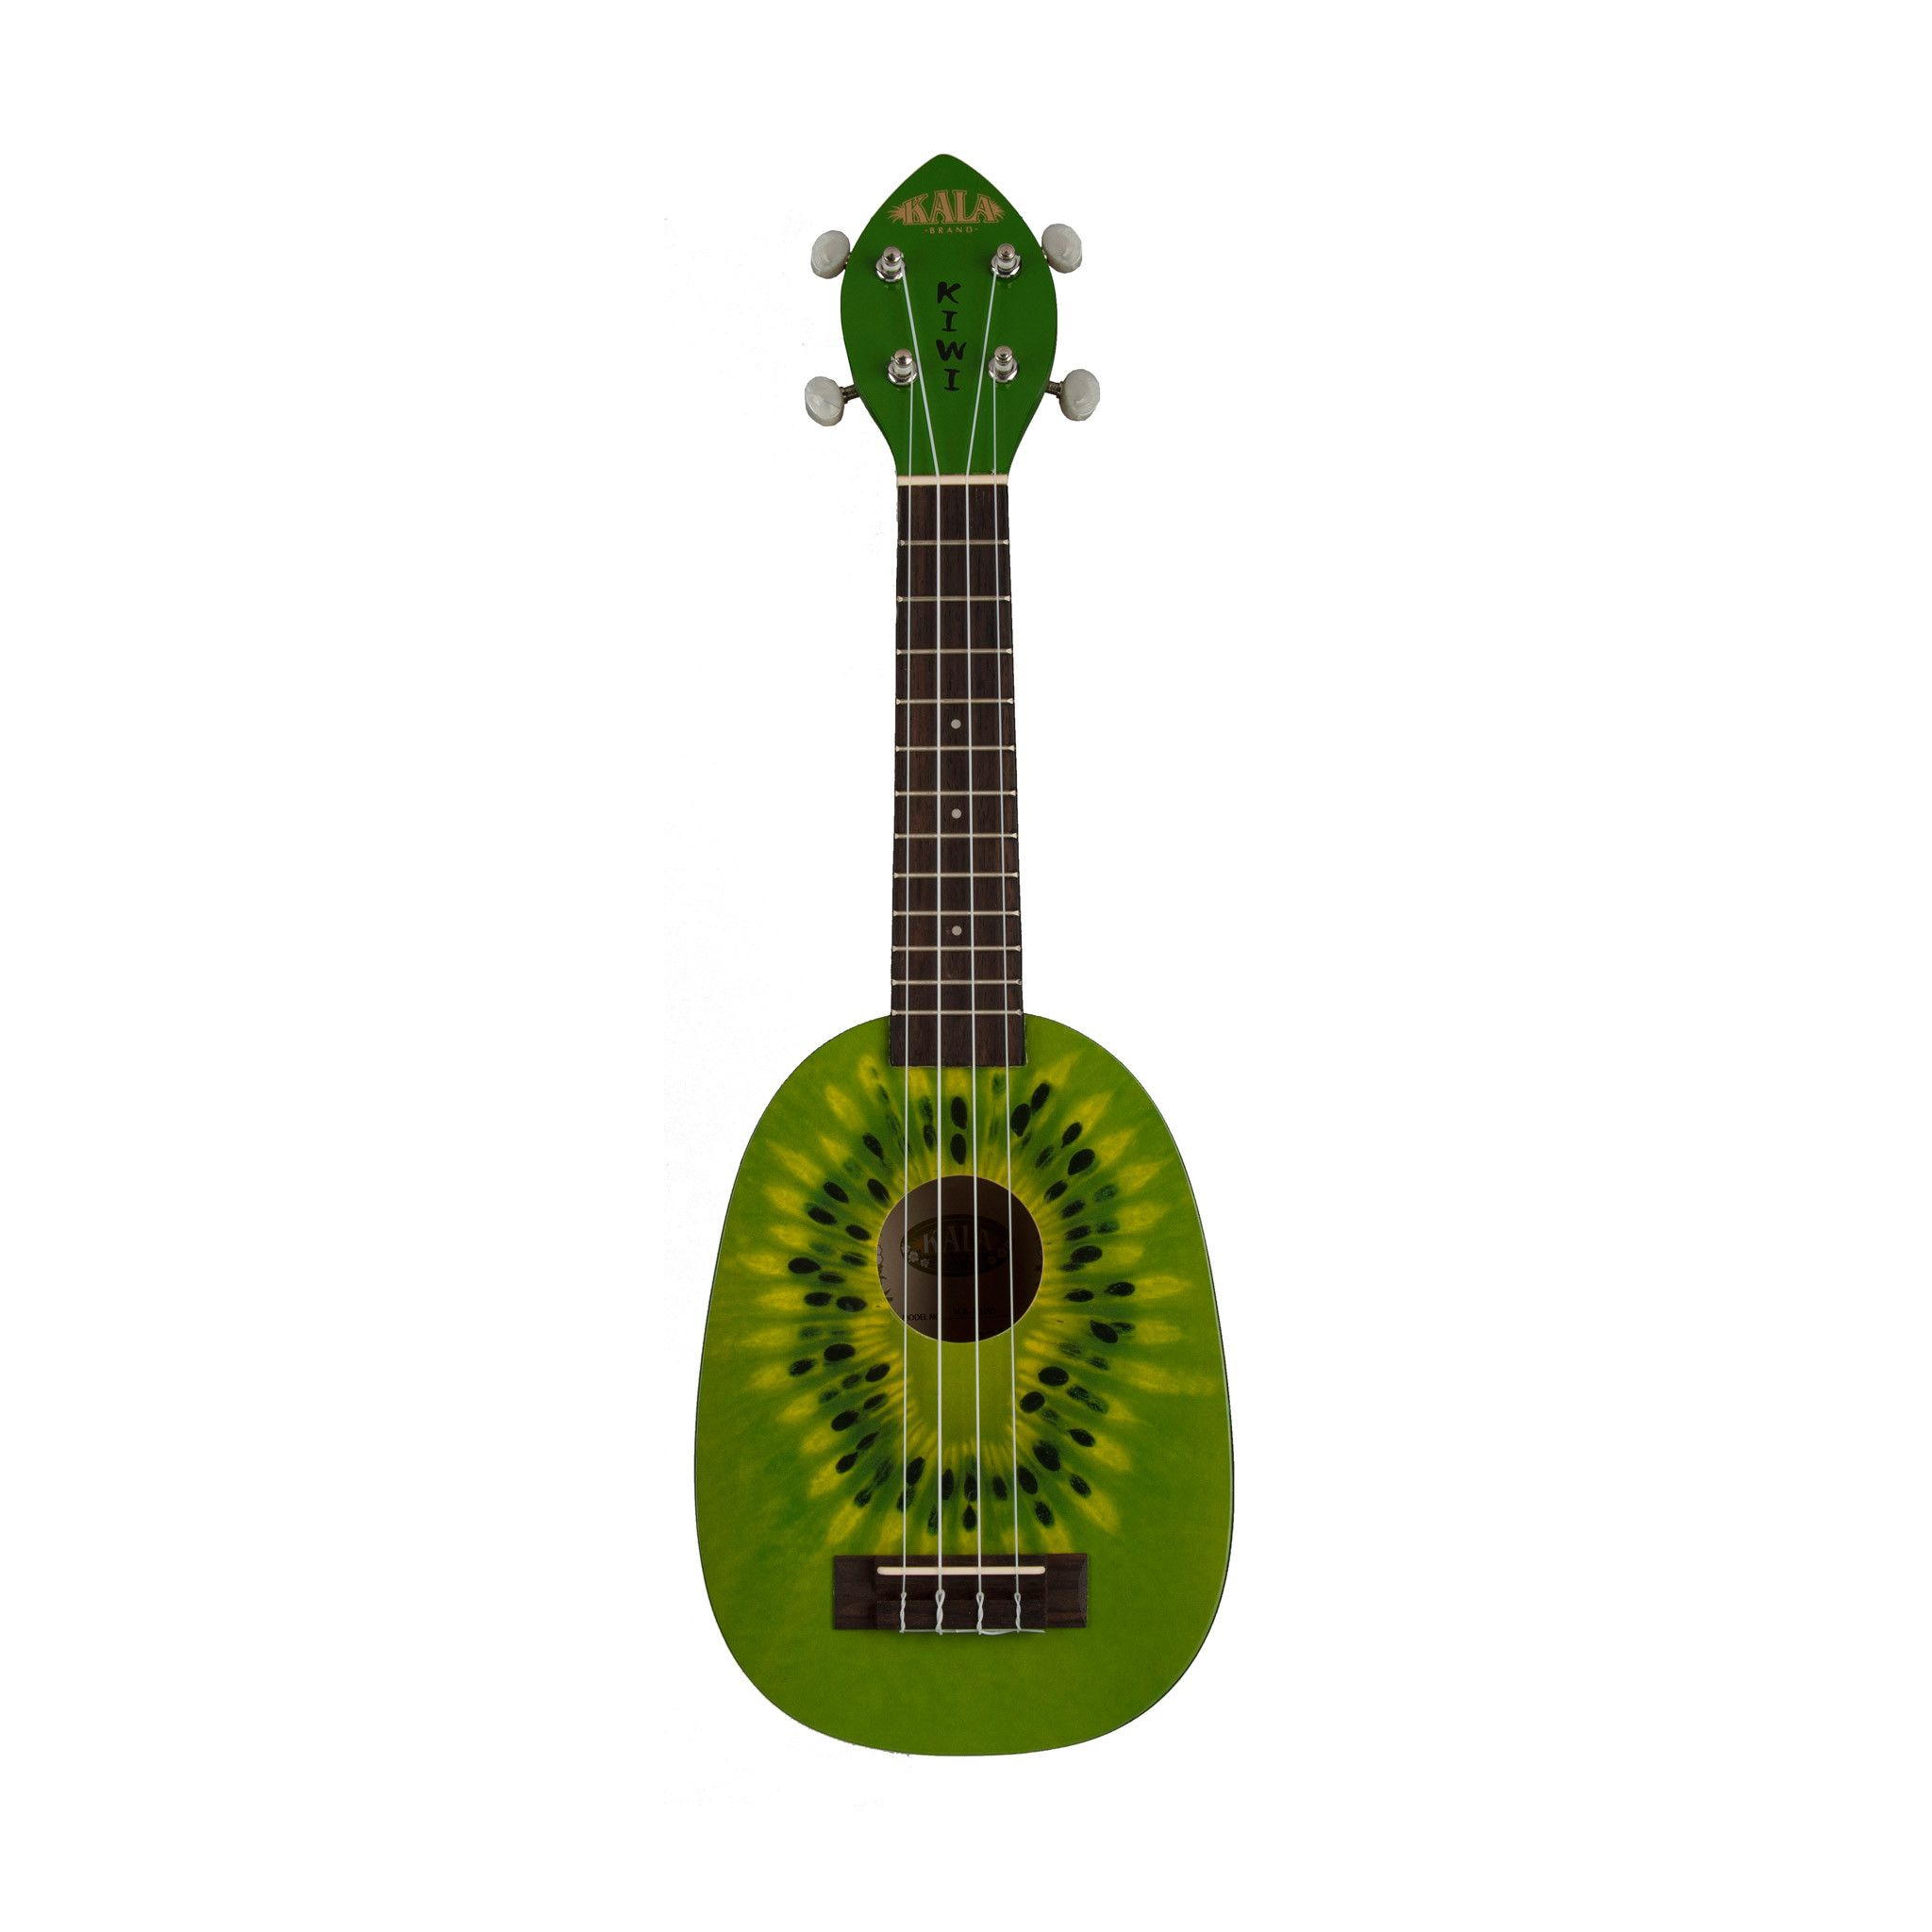 kala brand kiwi soprano ukulele ukuleles ukulele kala ukulele ukulele soprano. Black Bedroom Furniture Sets. Home Design Ideas